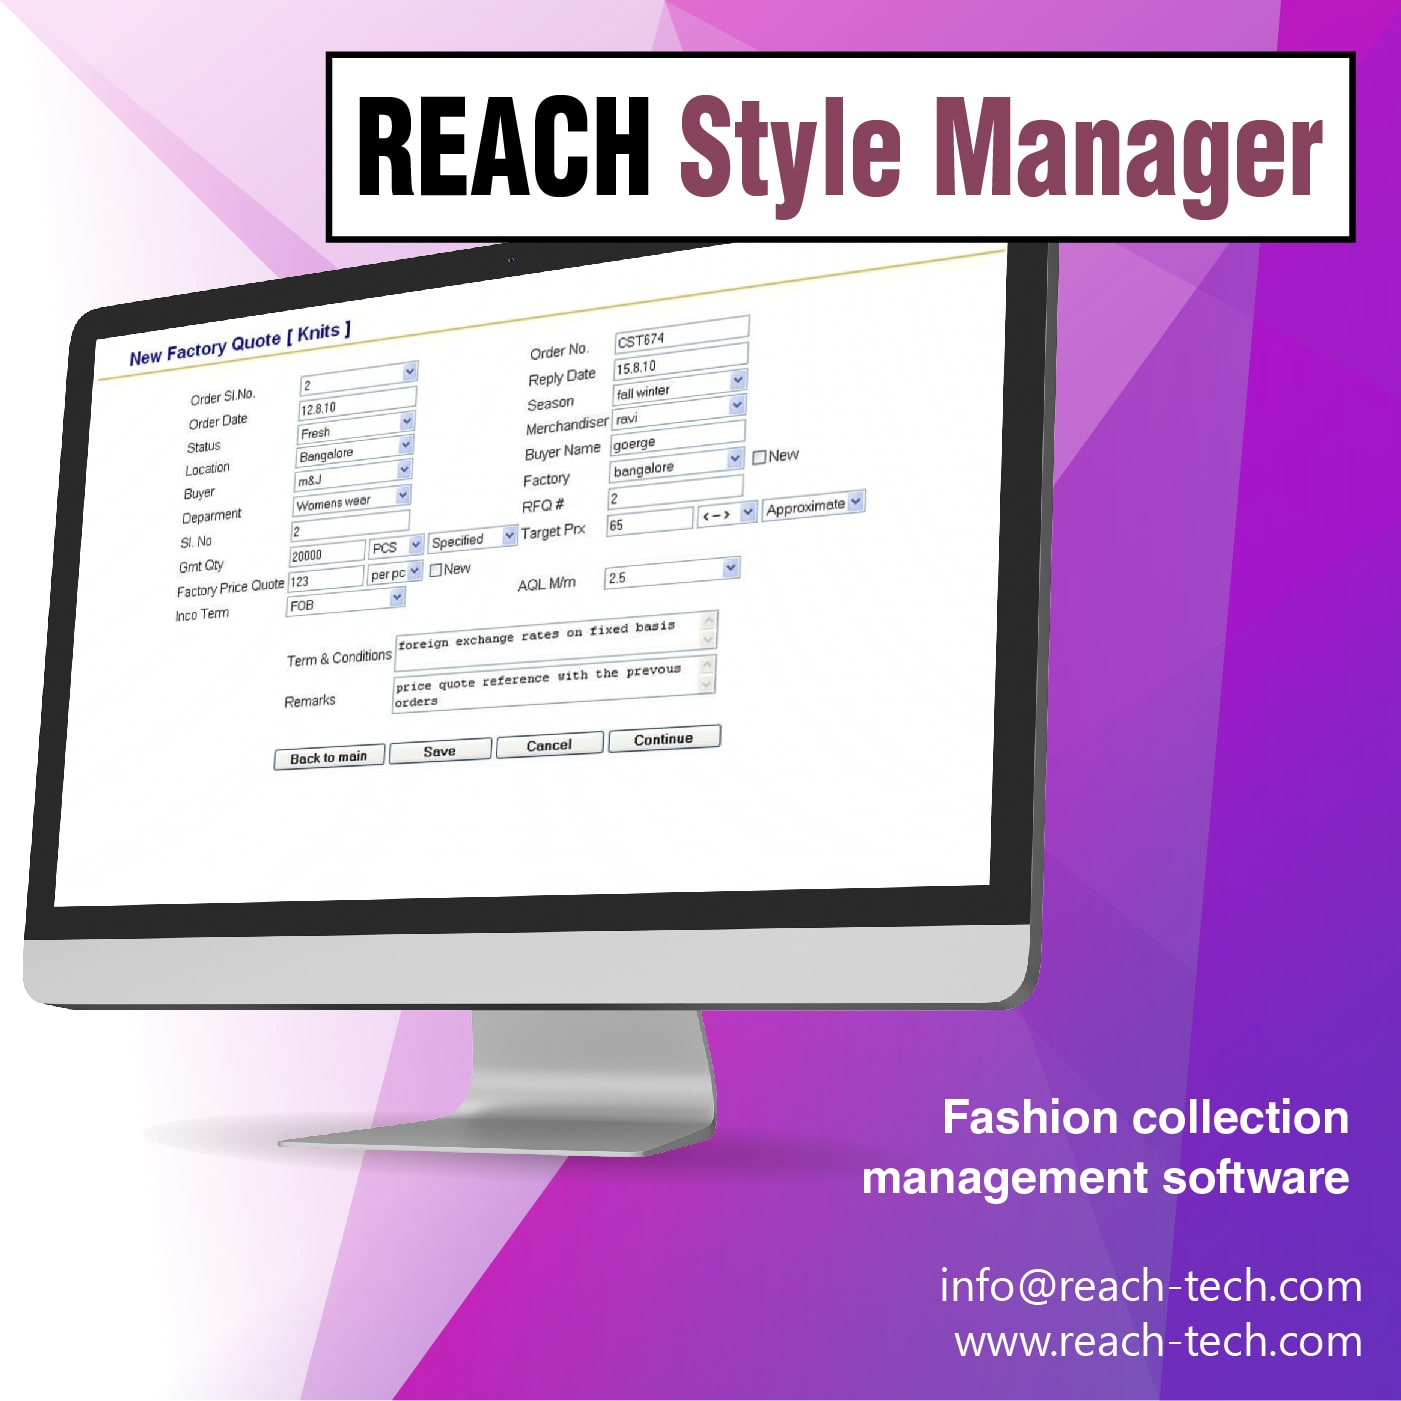 garment-collection-management-software-4